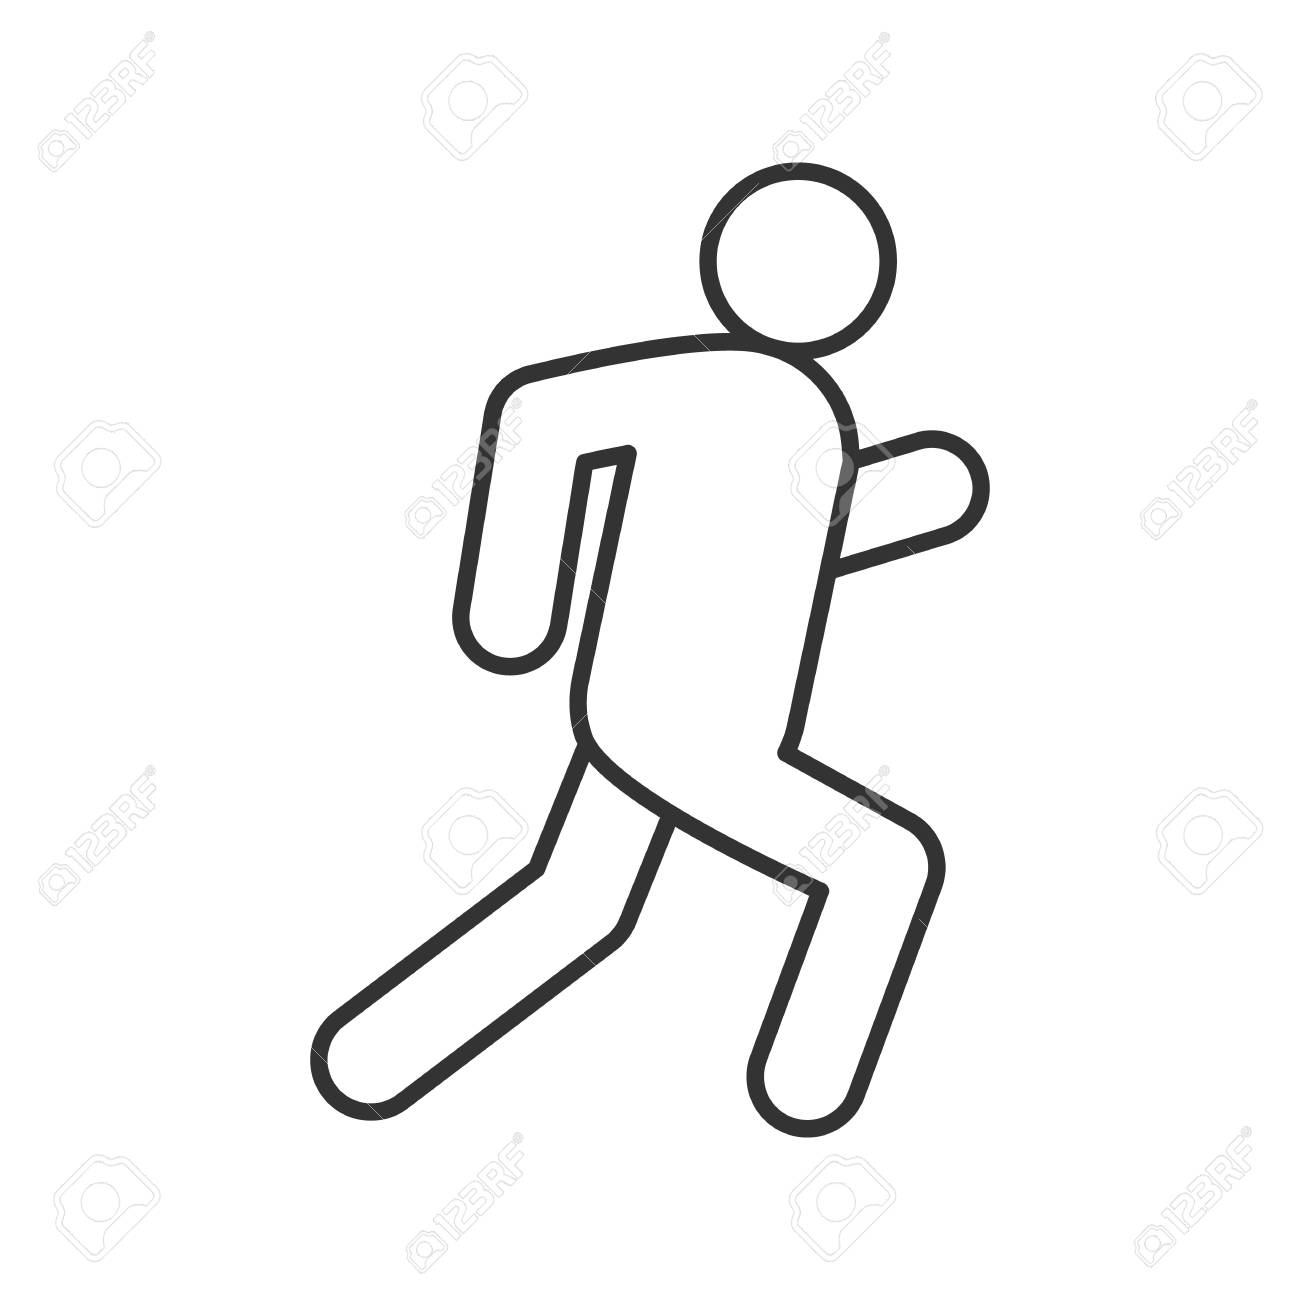 Running man linear icon escape thin line drawing jogging contour symbol isolated vector